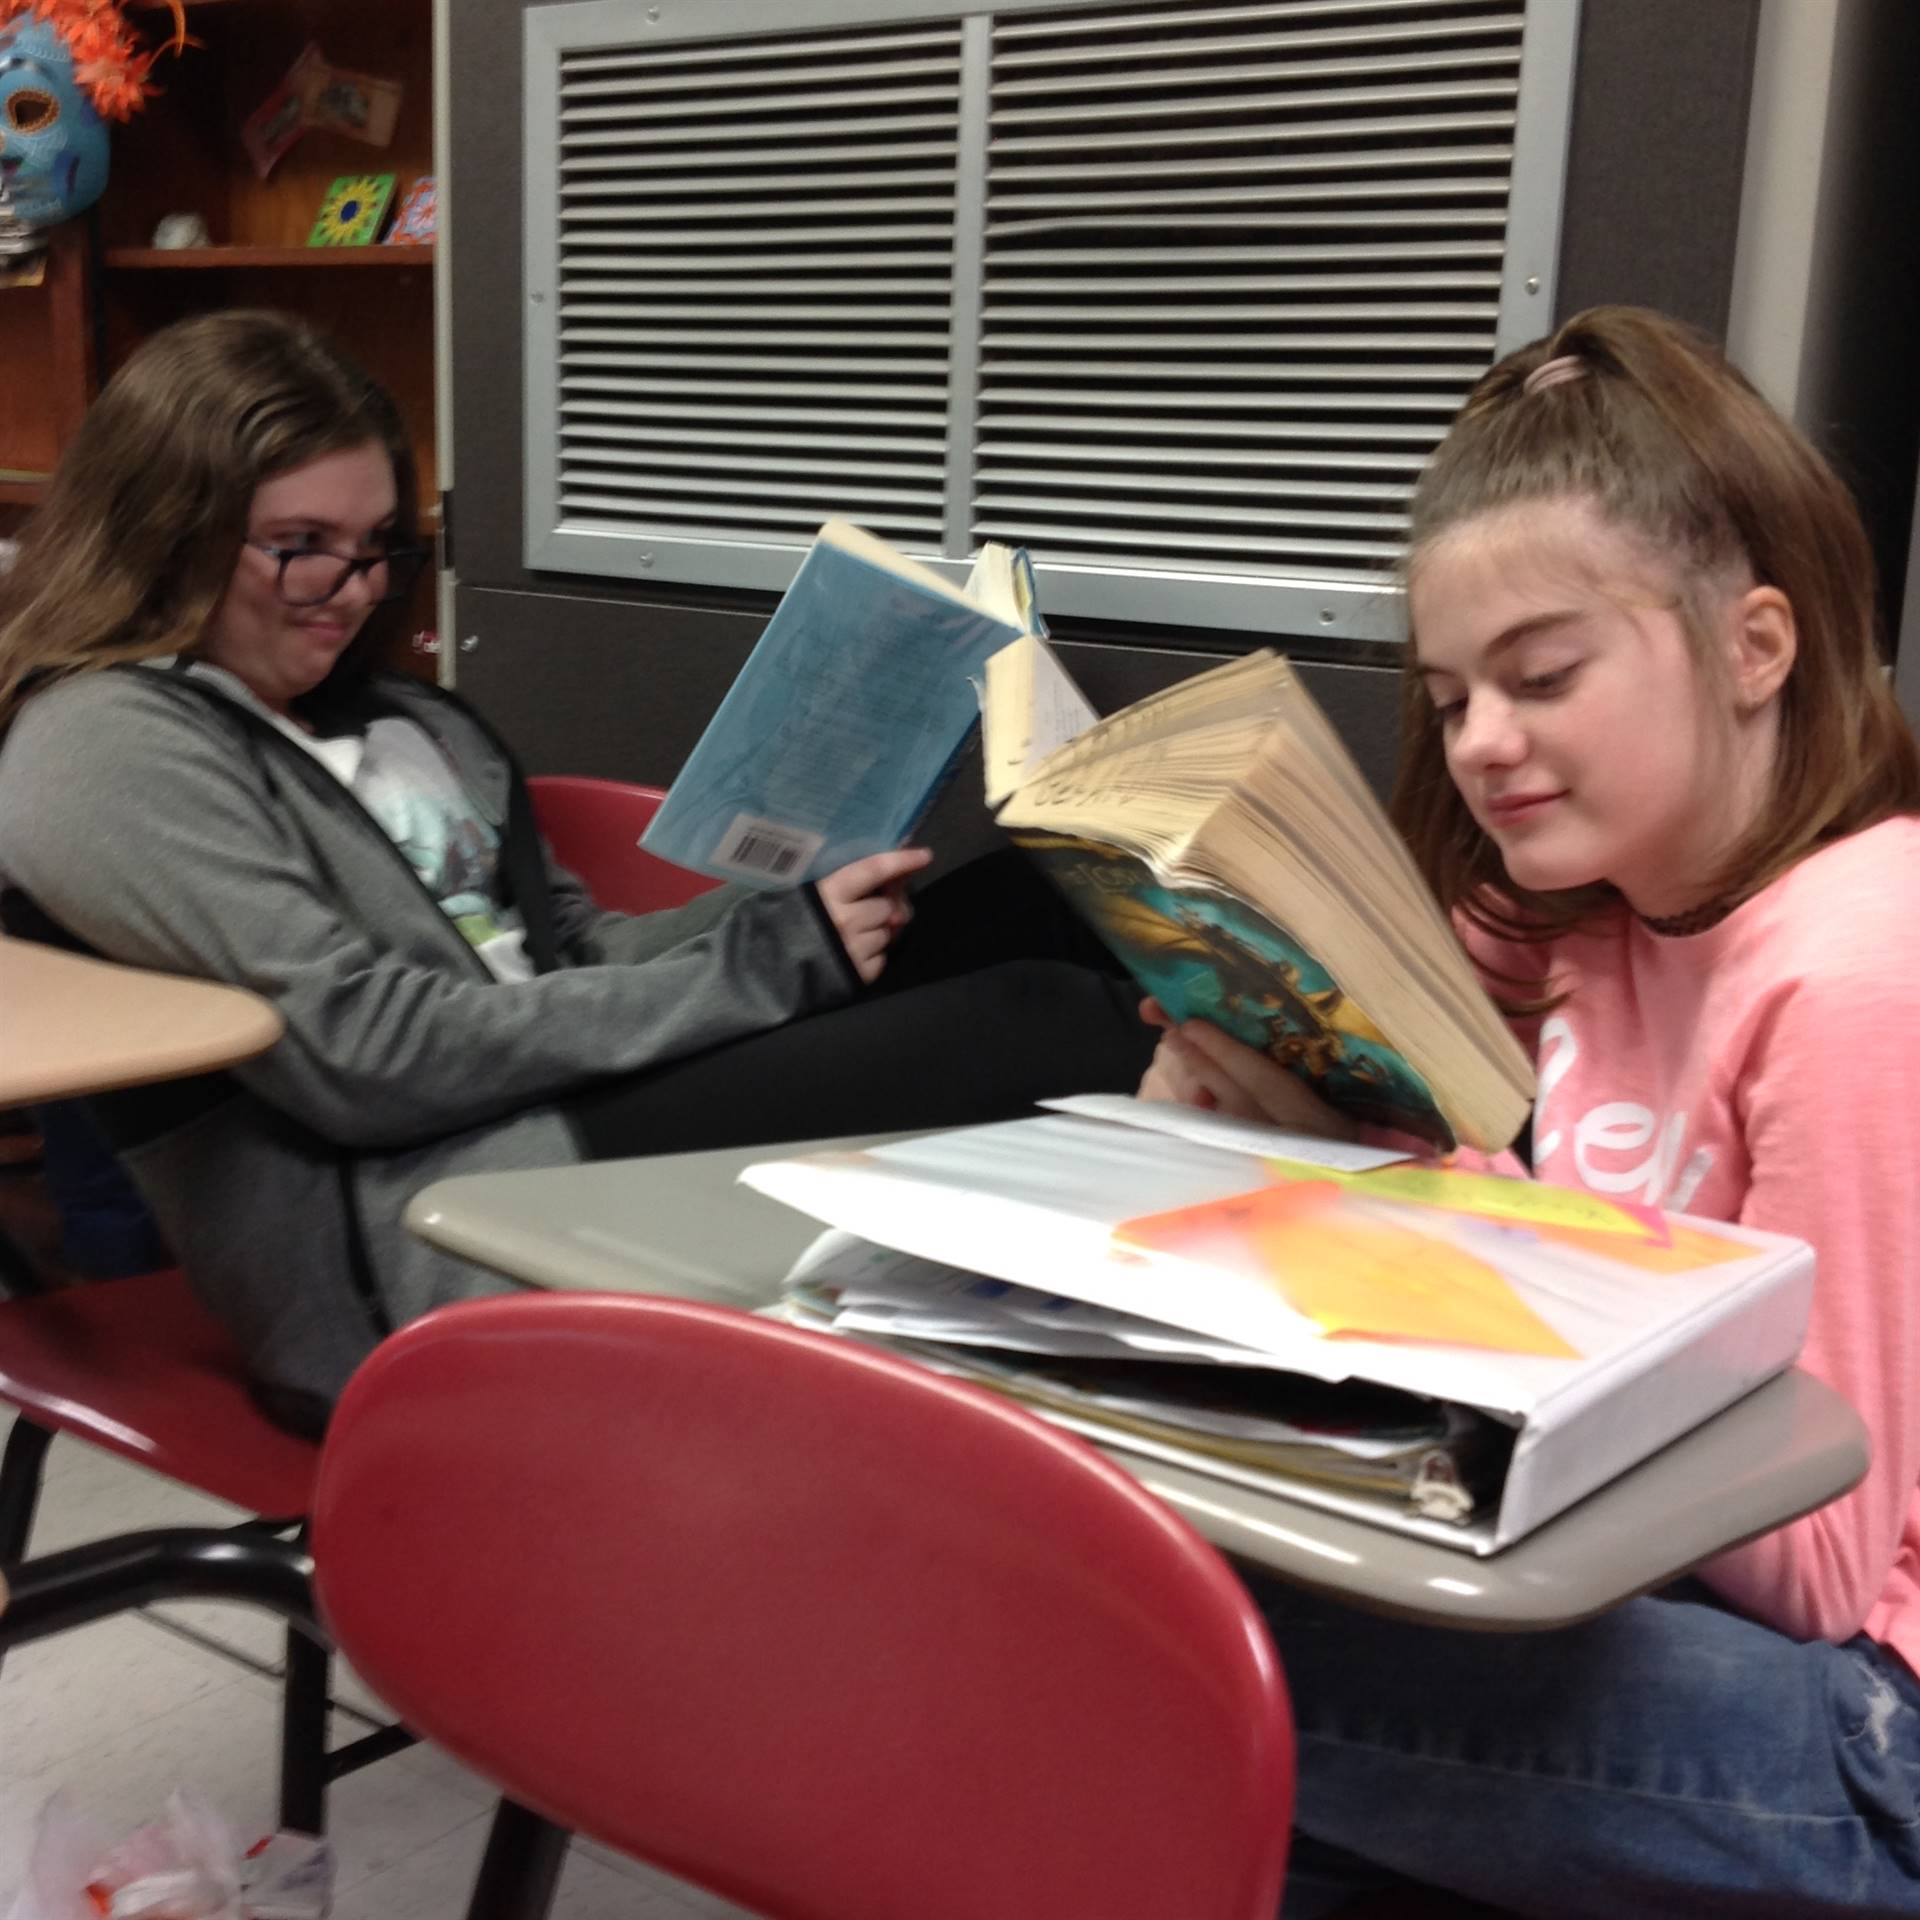 These students were caught reading.